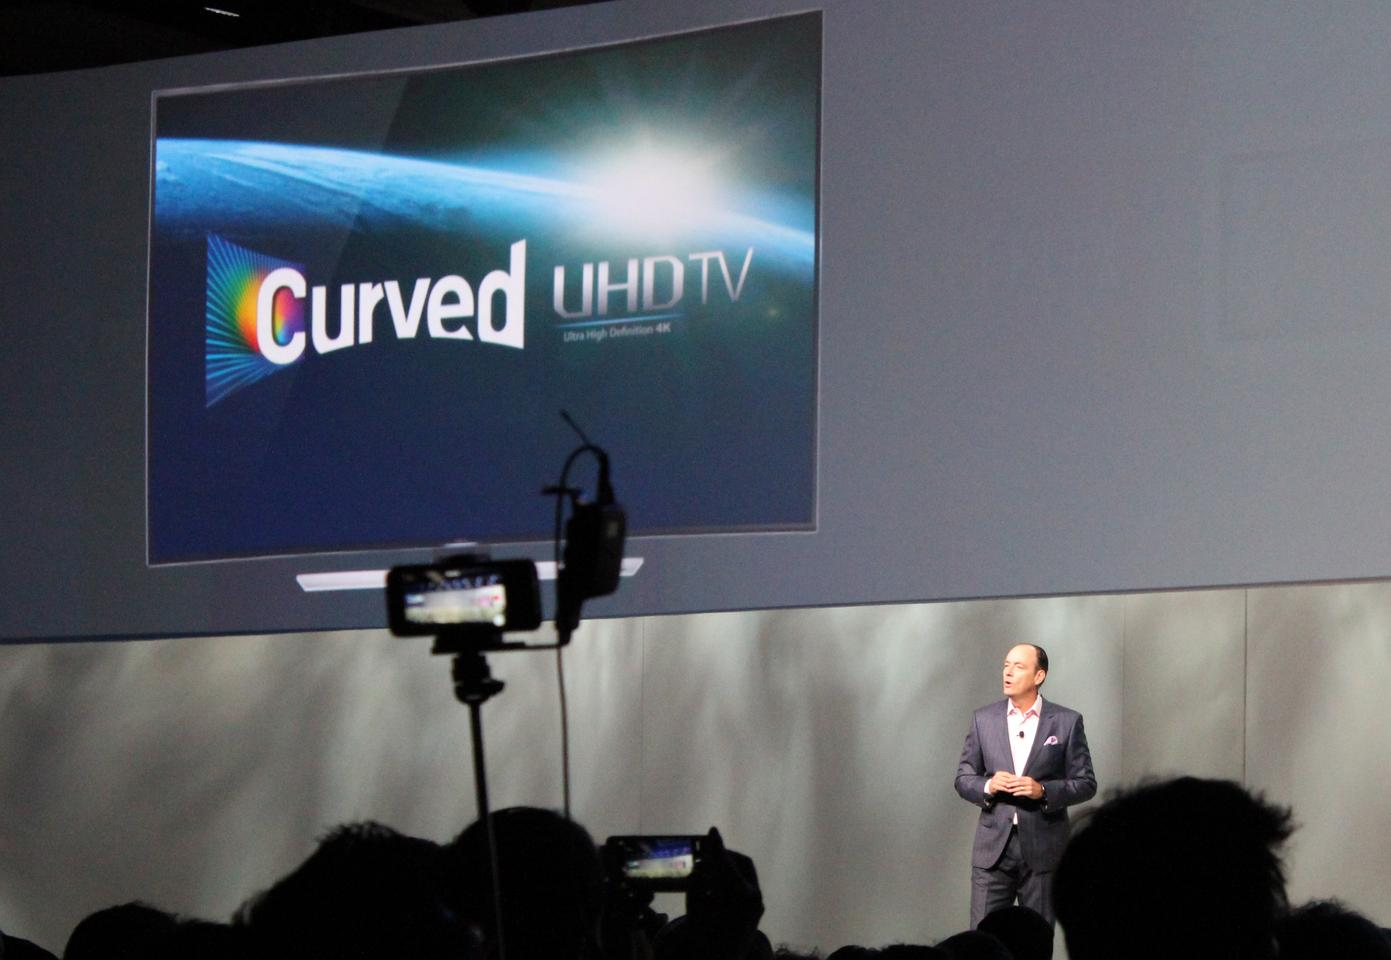 Unveiled at CES, Samsung claims its SUHD TVs offer a new standard in ultra high-definition viewing (Photo: Will Shanklin/Gizmag.com)